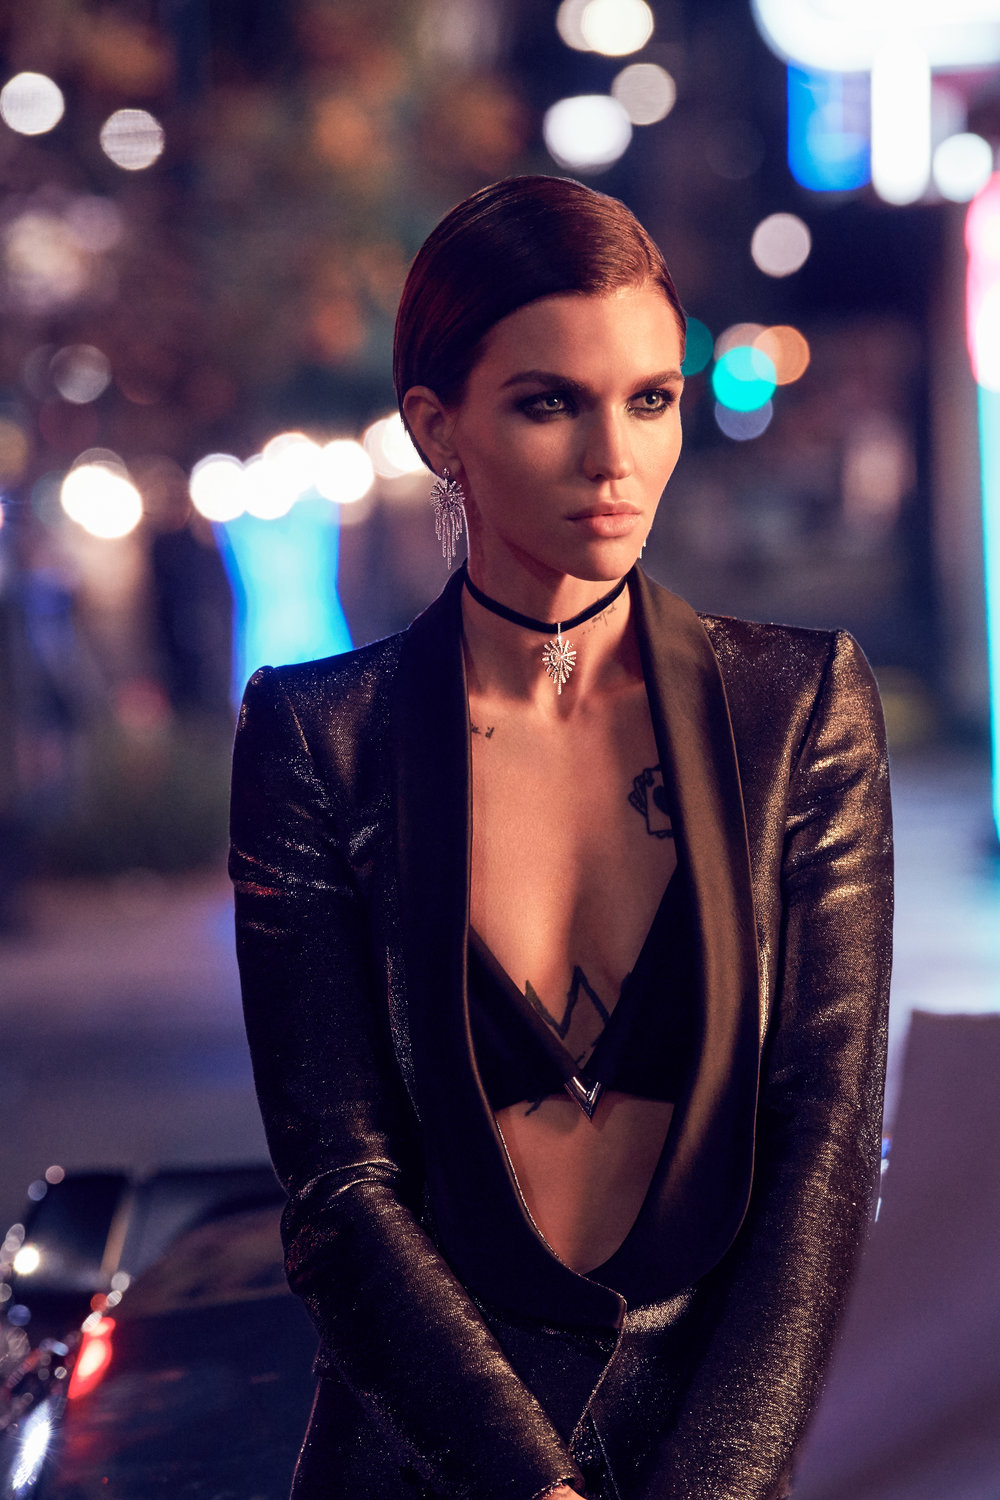 RUBY ROSE - NIGHTS IN THE CITY (10).jpg